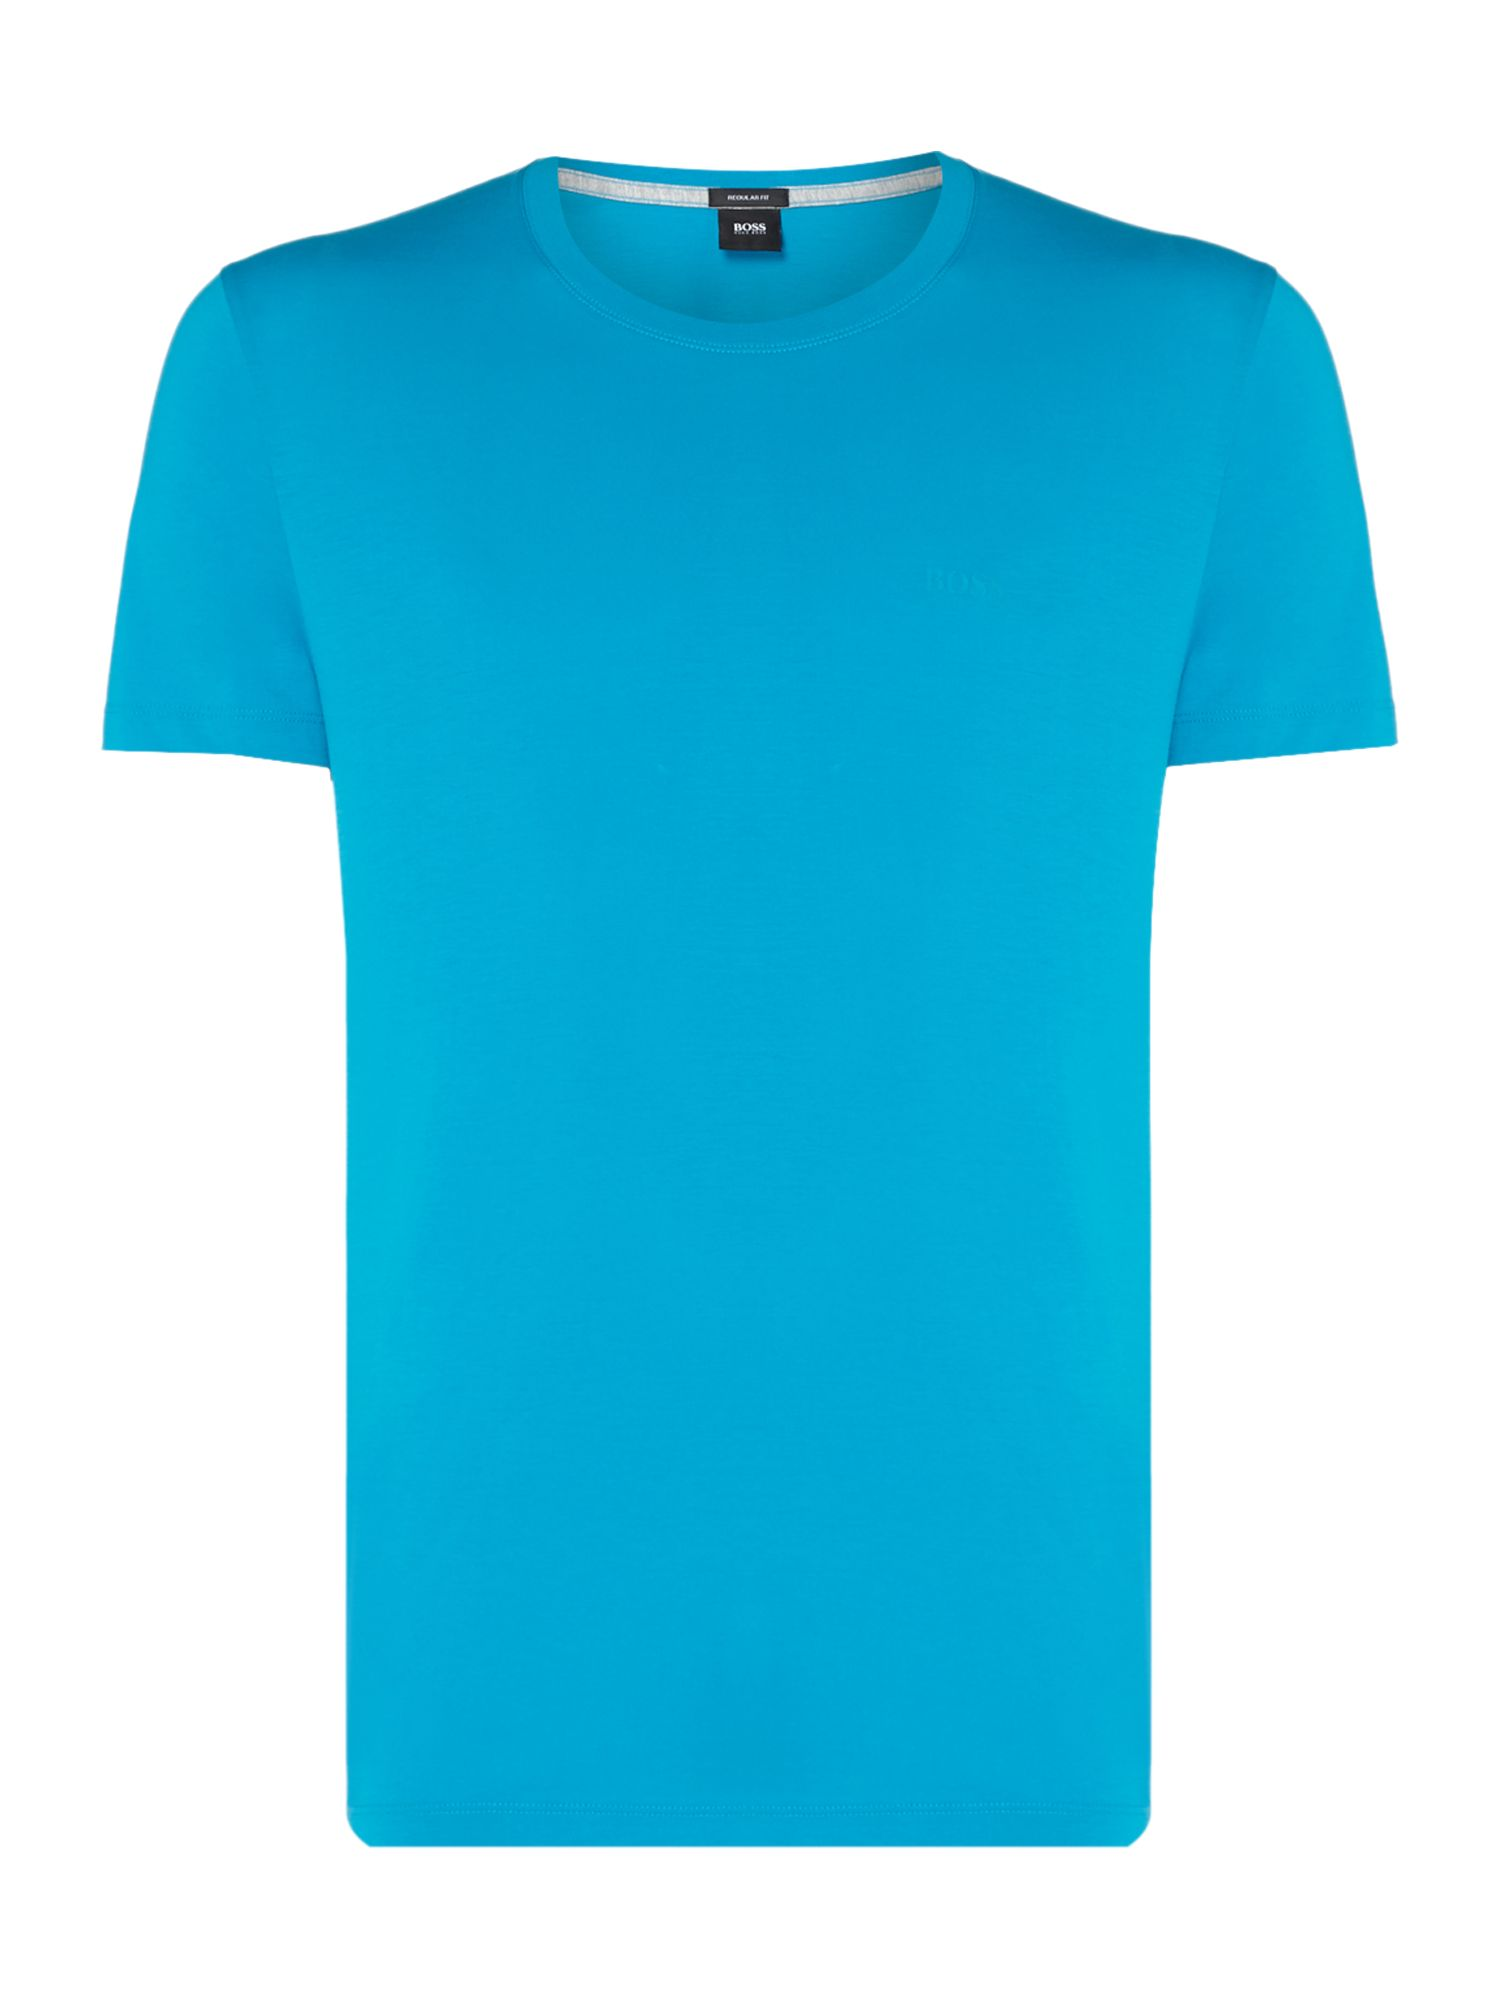 Men's Hugo Boss Logo Regular Fit T-Shirt, Bright Blue